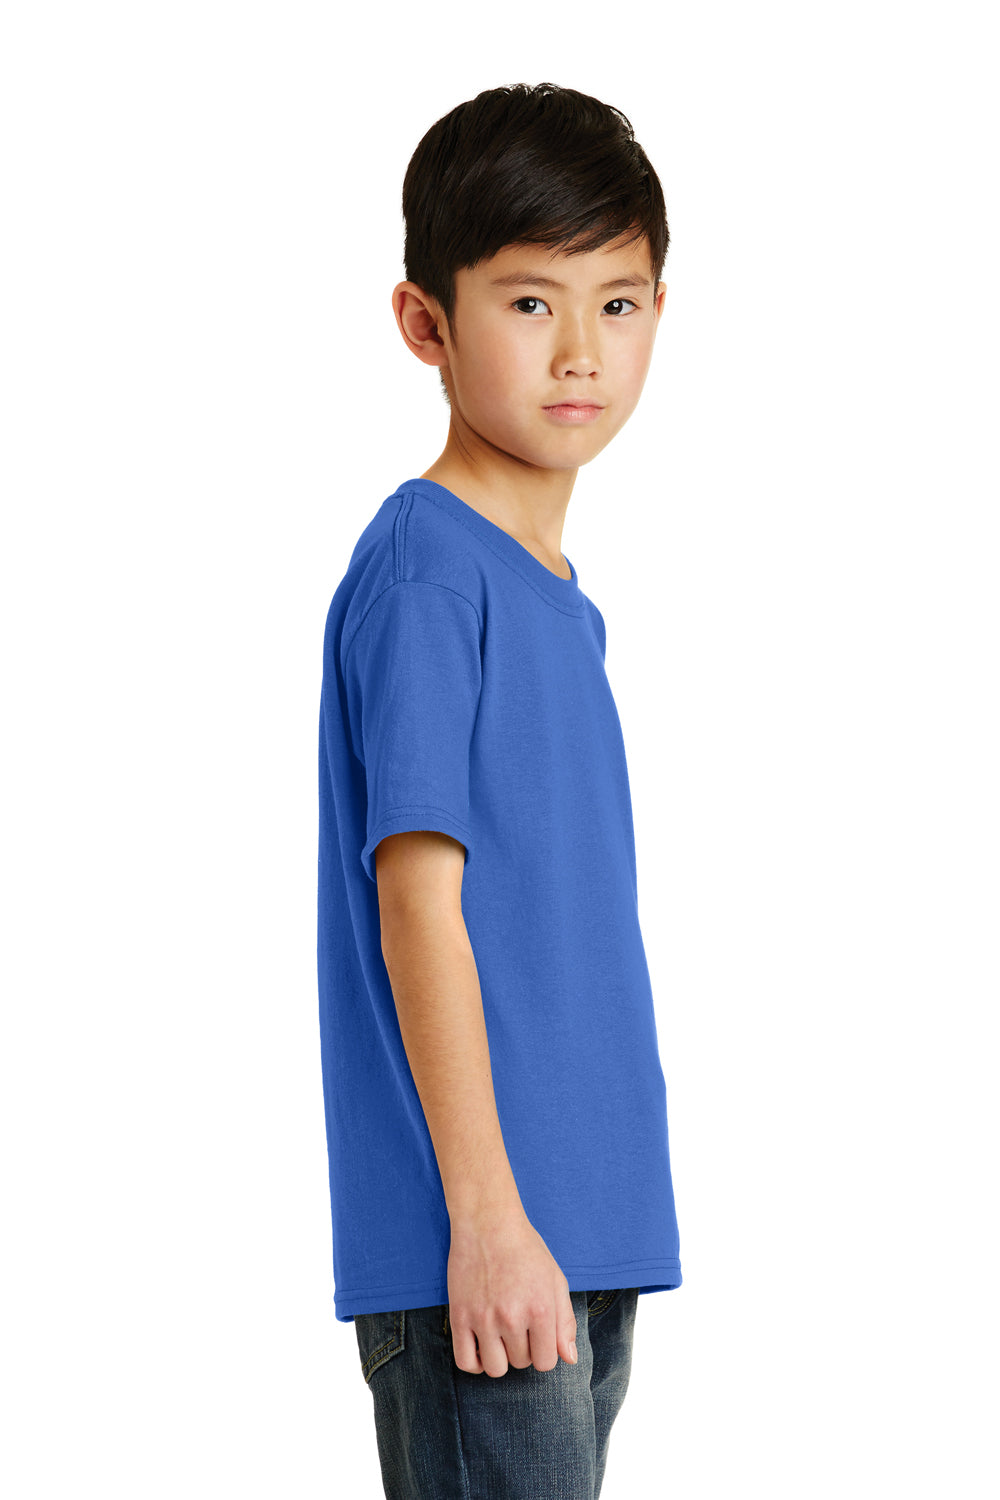 Port & Company PC55Y Youth Core Short Sleeve Crewneck T-Shirt Royal Blue Side